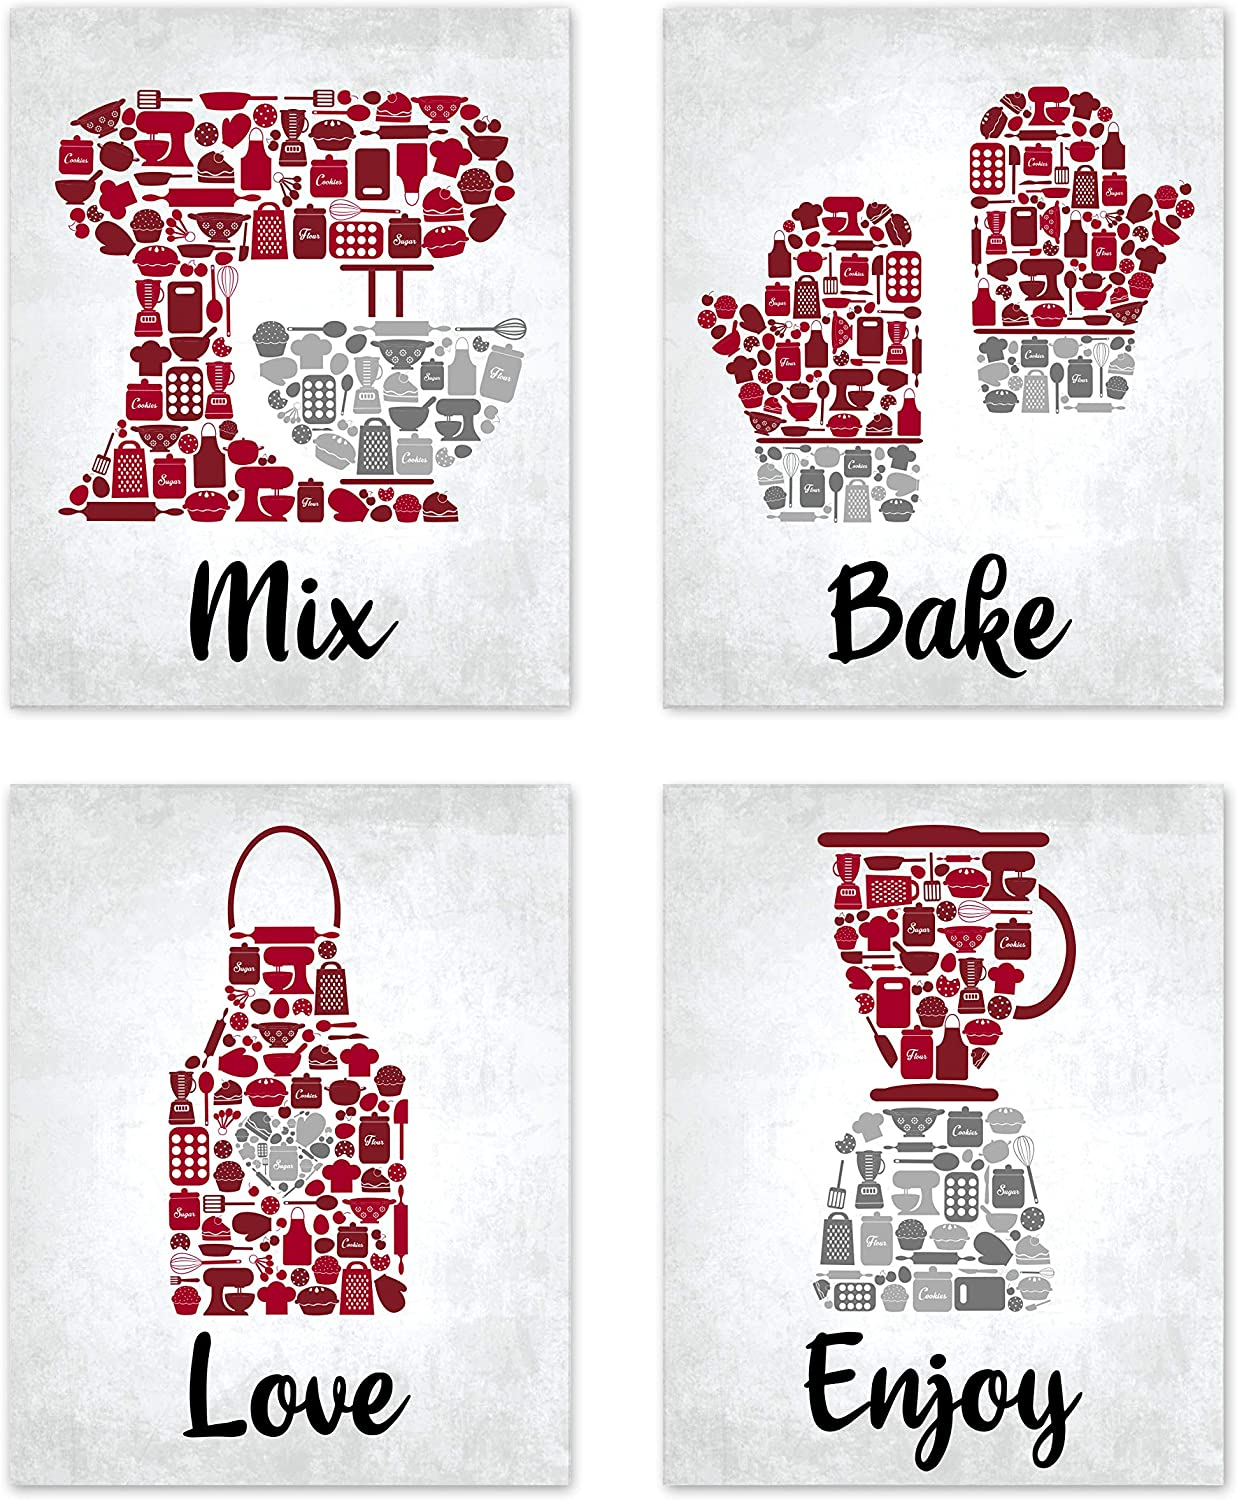 "Bake Mosaic Red Maroon Grey Retro Inspirational Restaurant Utensil Food Wall Art Chef Baking Prints Posters Signs Sets for Rustic Country Kitchen Decor Home House Decor Decoration Dining Room Funny Sayings Quotes Unframed 8"" x 10"""